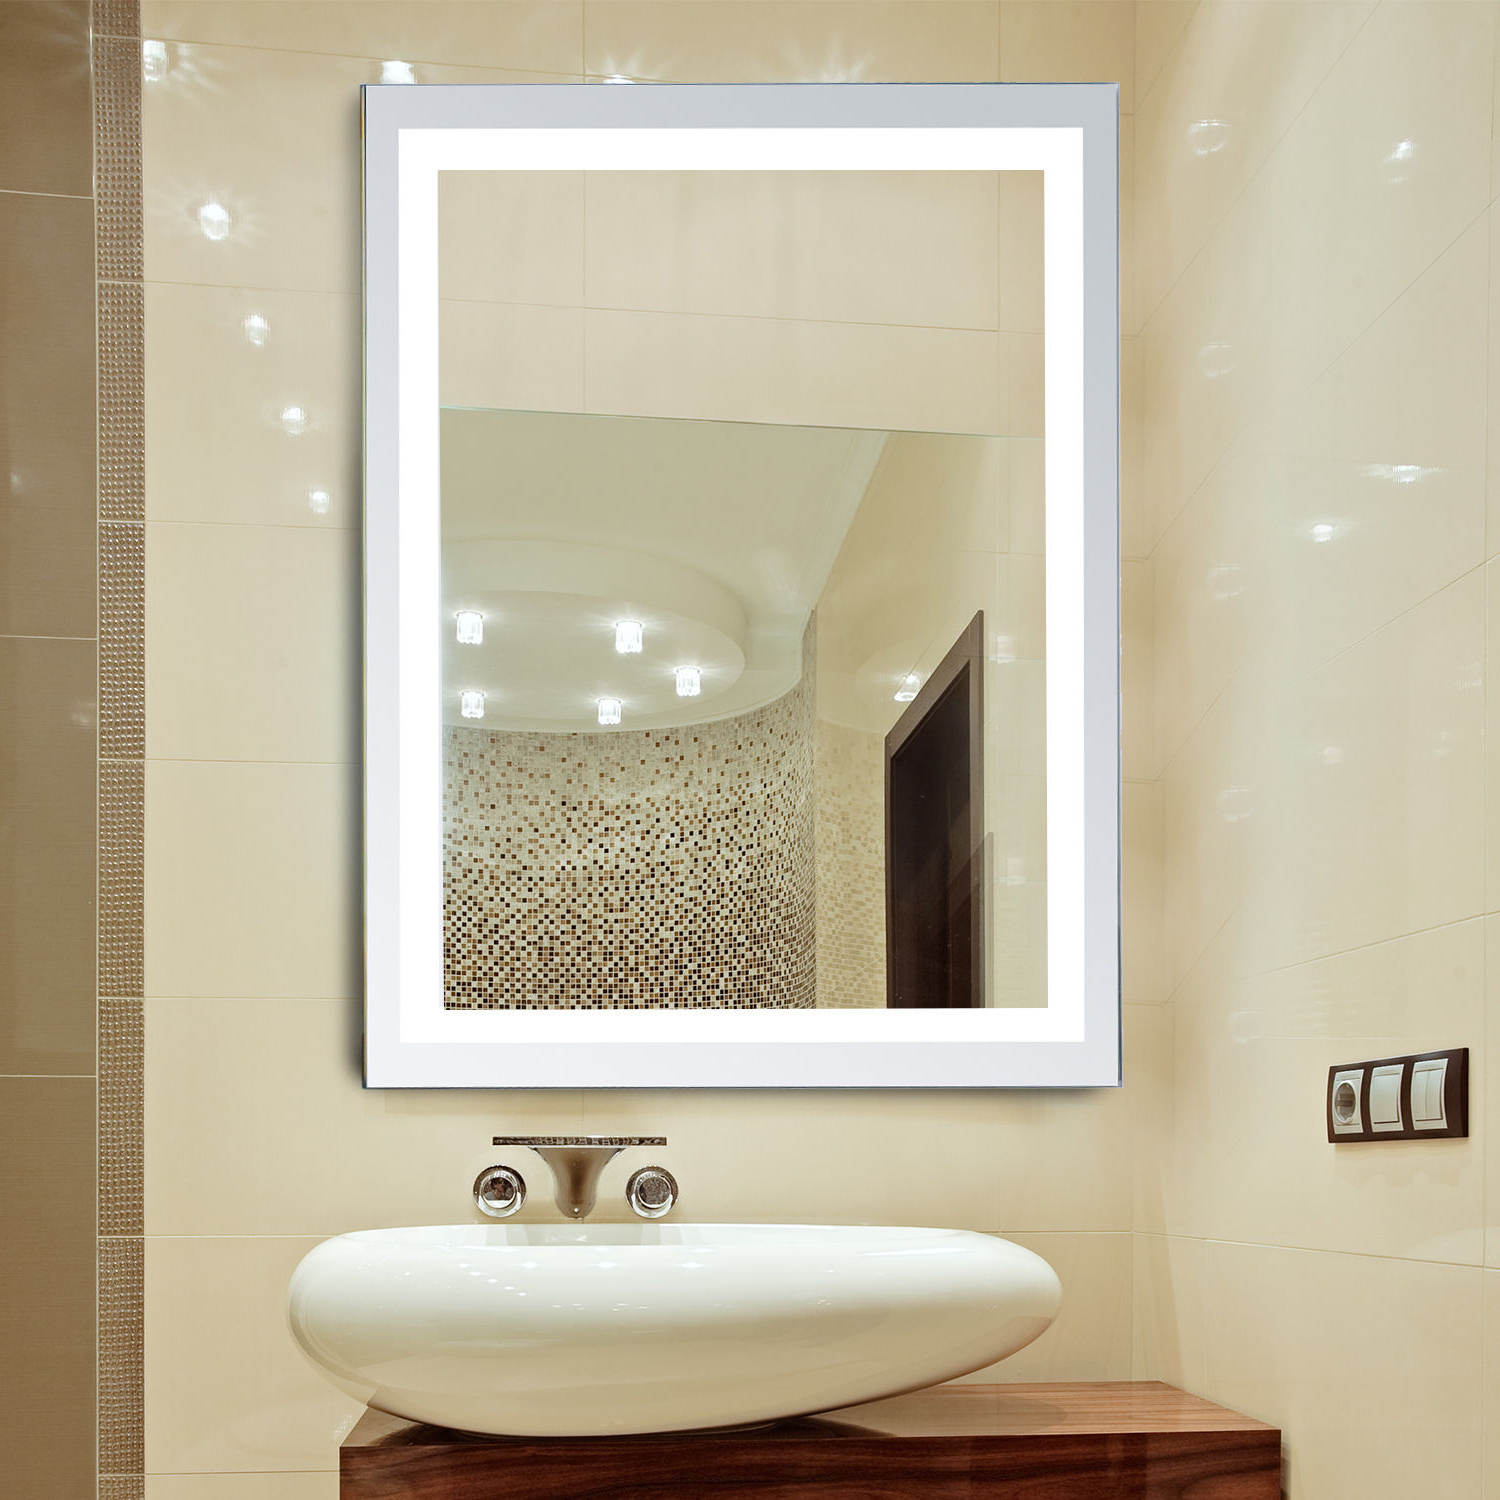 Details About Led Illuminated Bathroom Wall Mirrors With Lights Modern  Makeup Vanity Mirror Intended For Fashionable Illuminated Wall Mirrors For Bathroom (View 5 of 20)